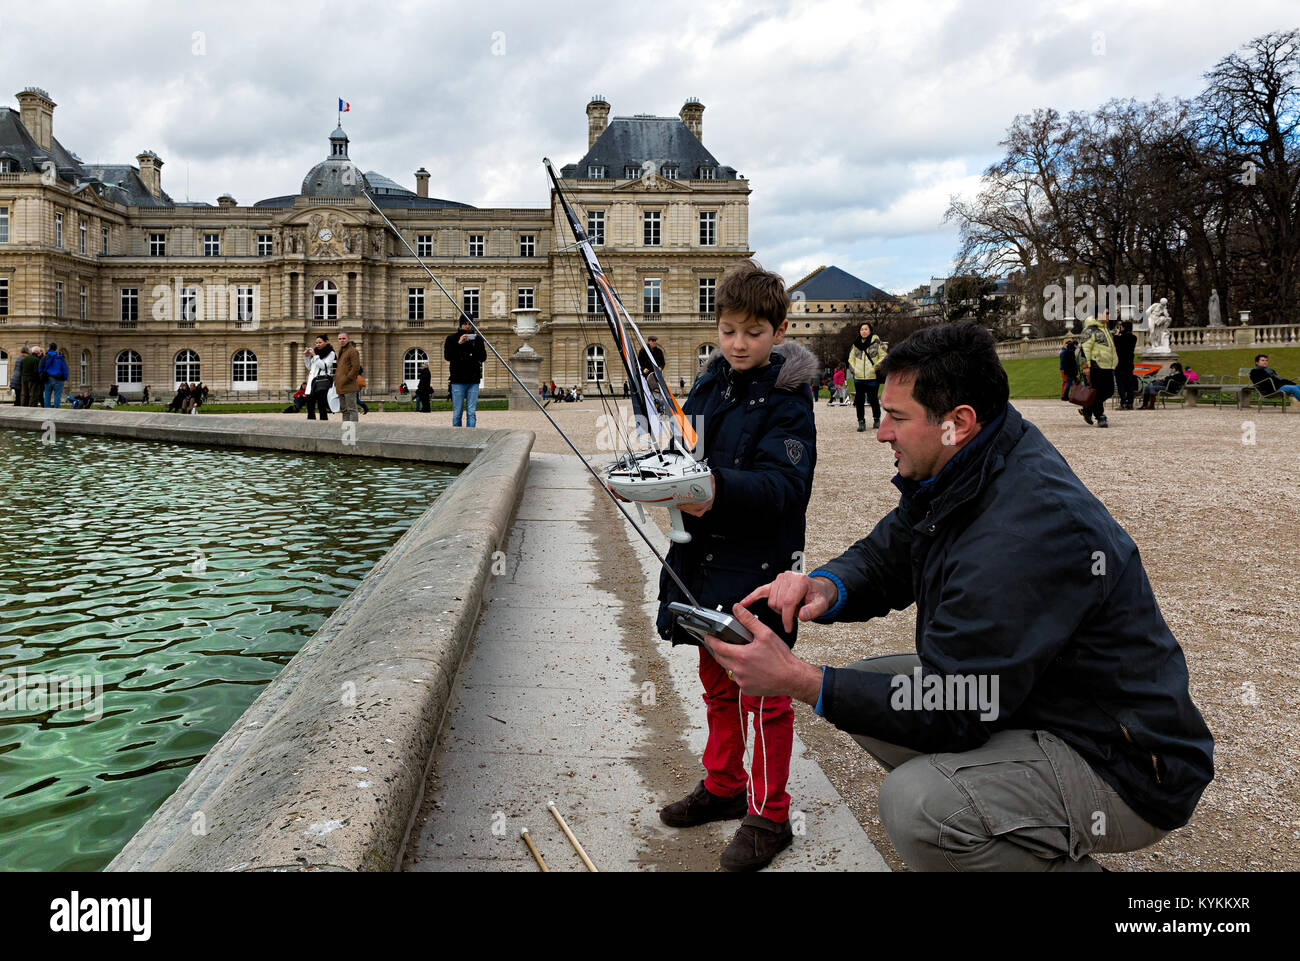 PARIS, FRANCE - JAN 4, 2014: An unidentified child learns how to sail a model boat at the Jardin du Luxembourg, Stock Photo